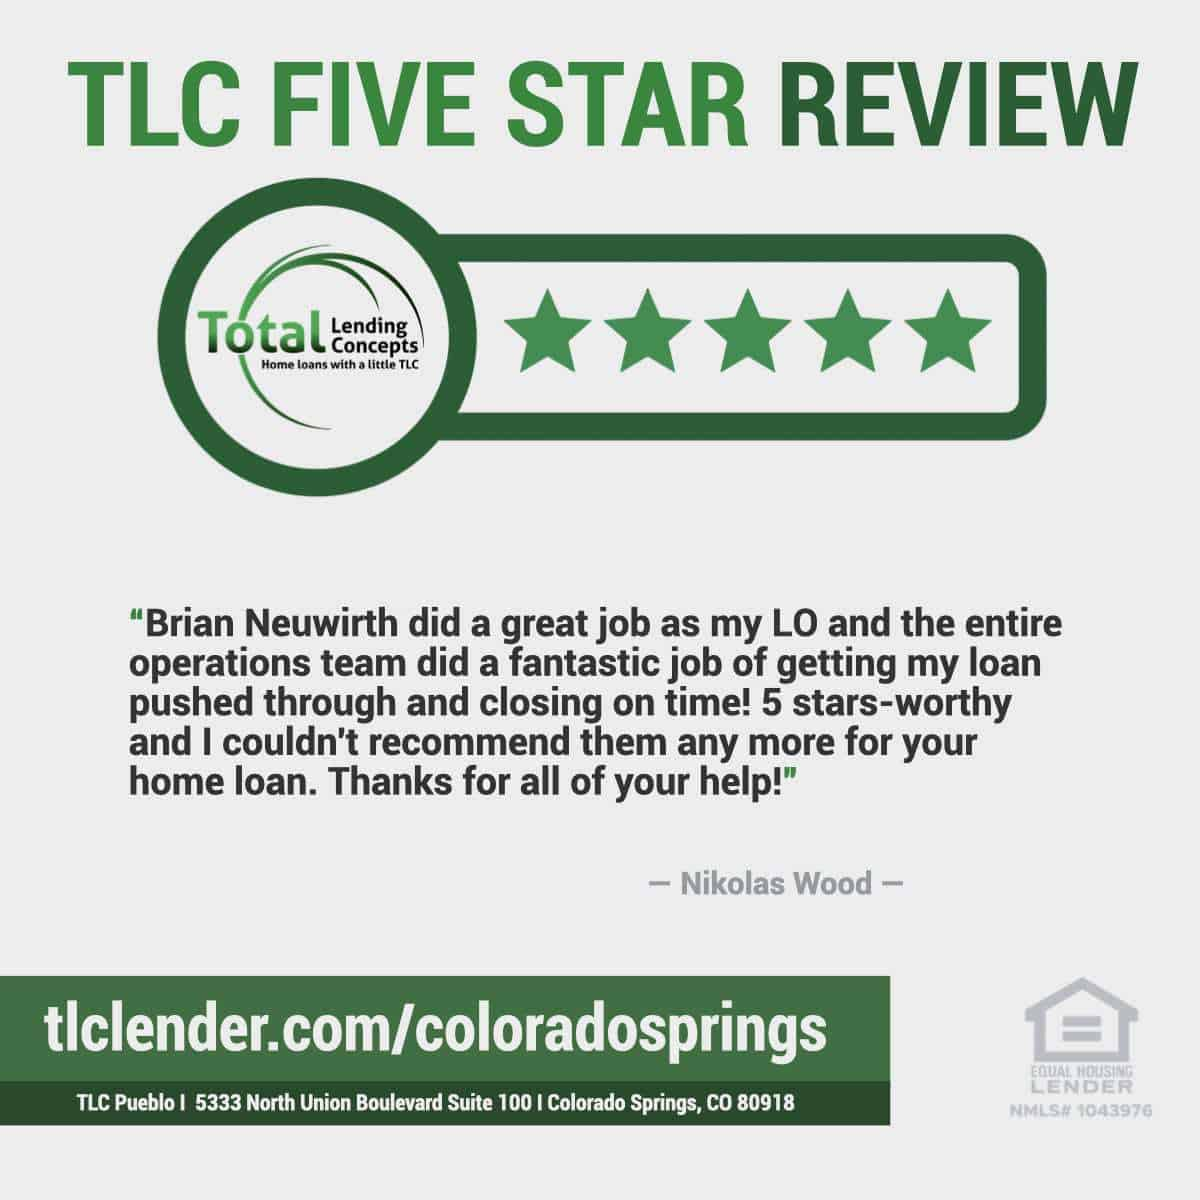 Five Star Review for Brian Neuwirth of Total Lending Concepts Home Loan Closing in Colorado Springs, Colorado